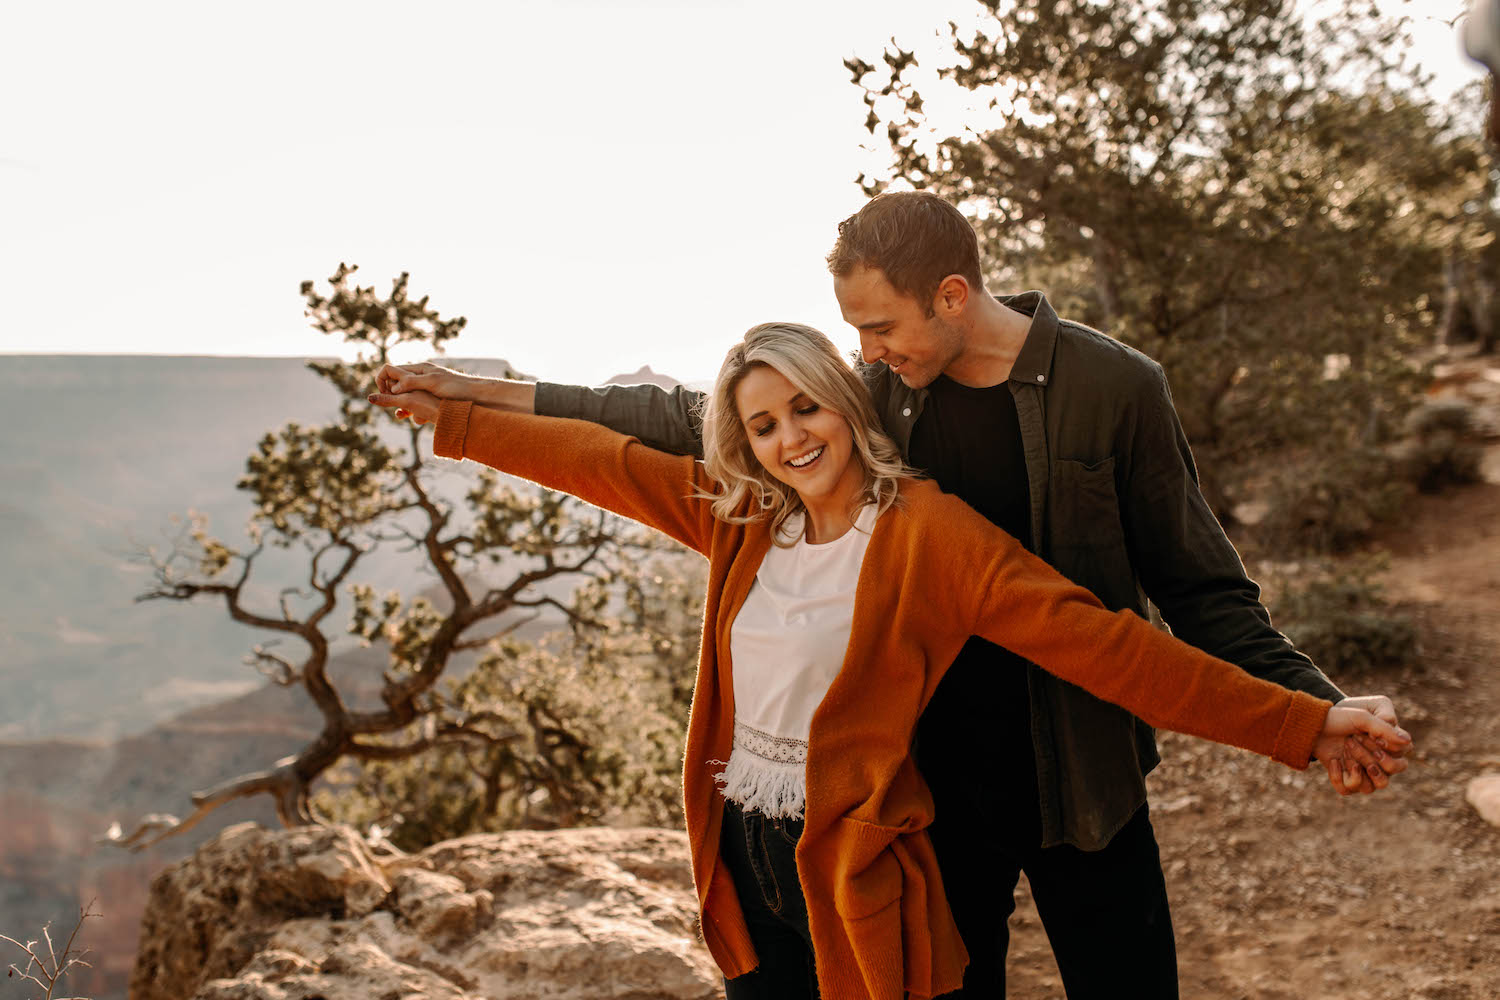 Grand Canyon Photographer Captured Sunrise Adventure Couple Session-38.jpg